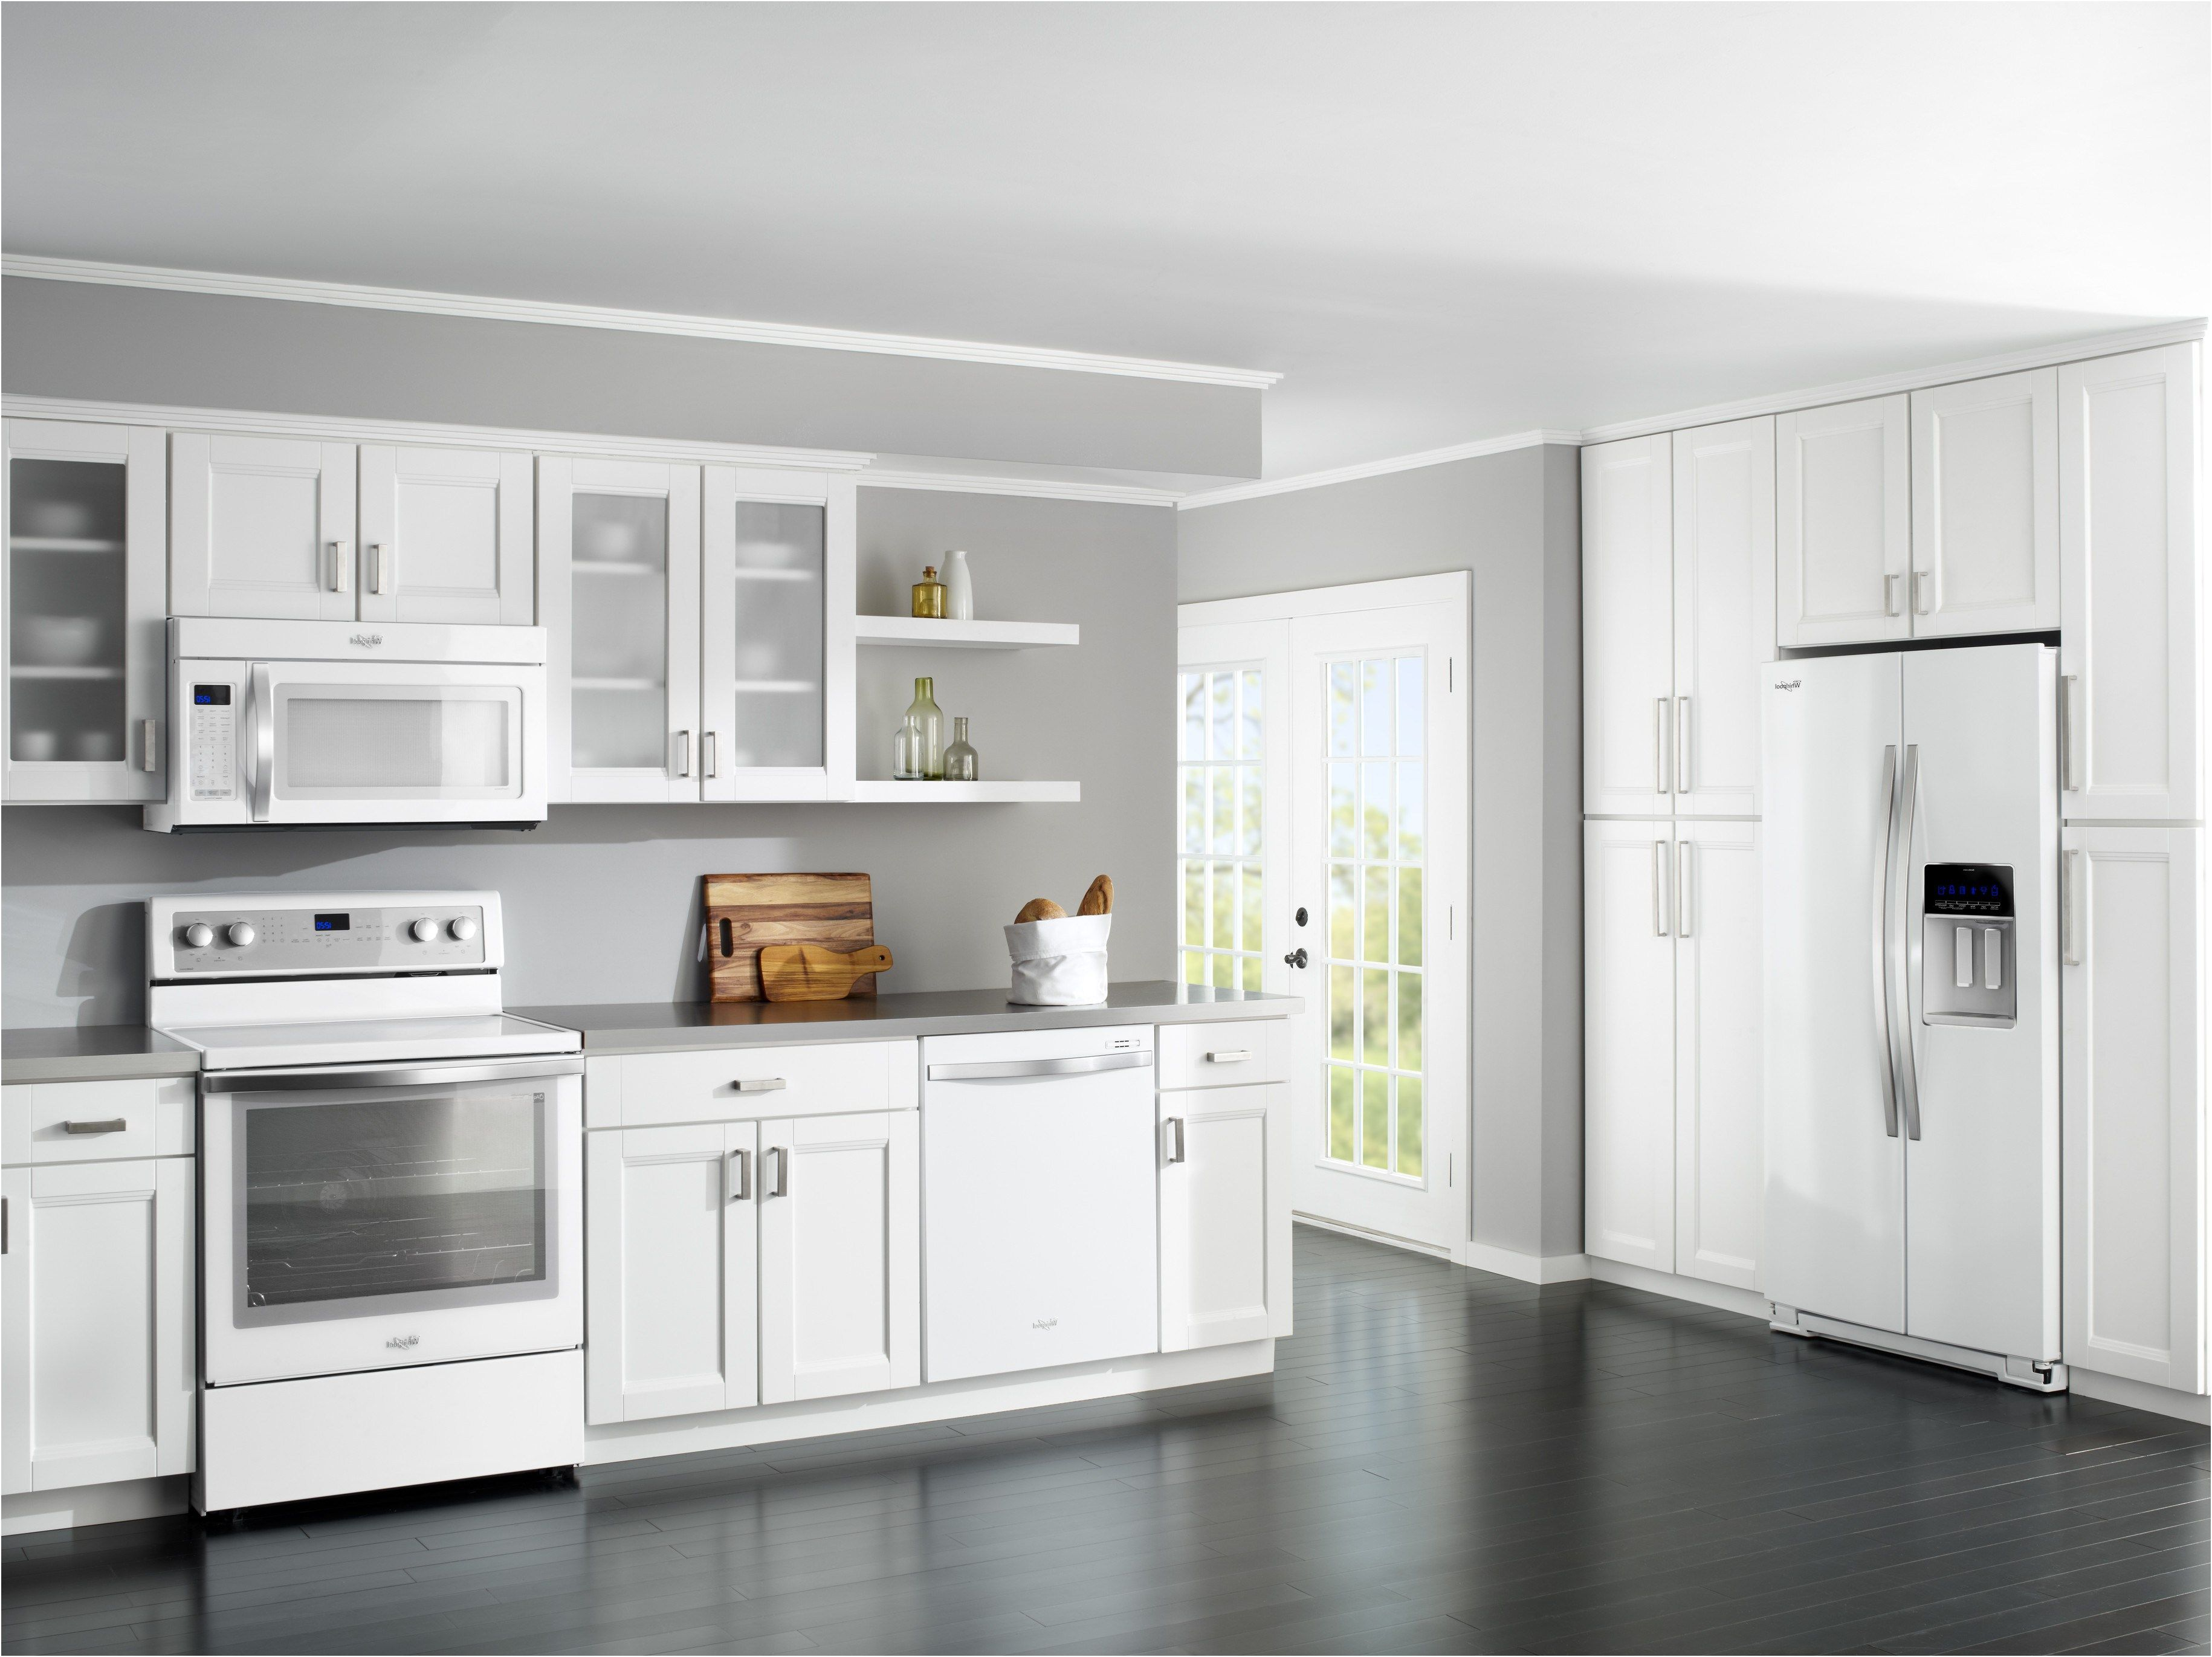 Best 25 White Appliances Ideas On Pinterest White Kitchen From What Color Kitchen Cabinets Go With White Appliances